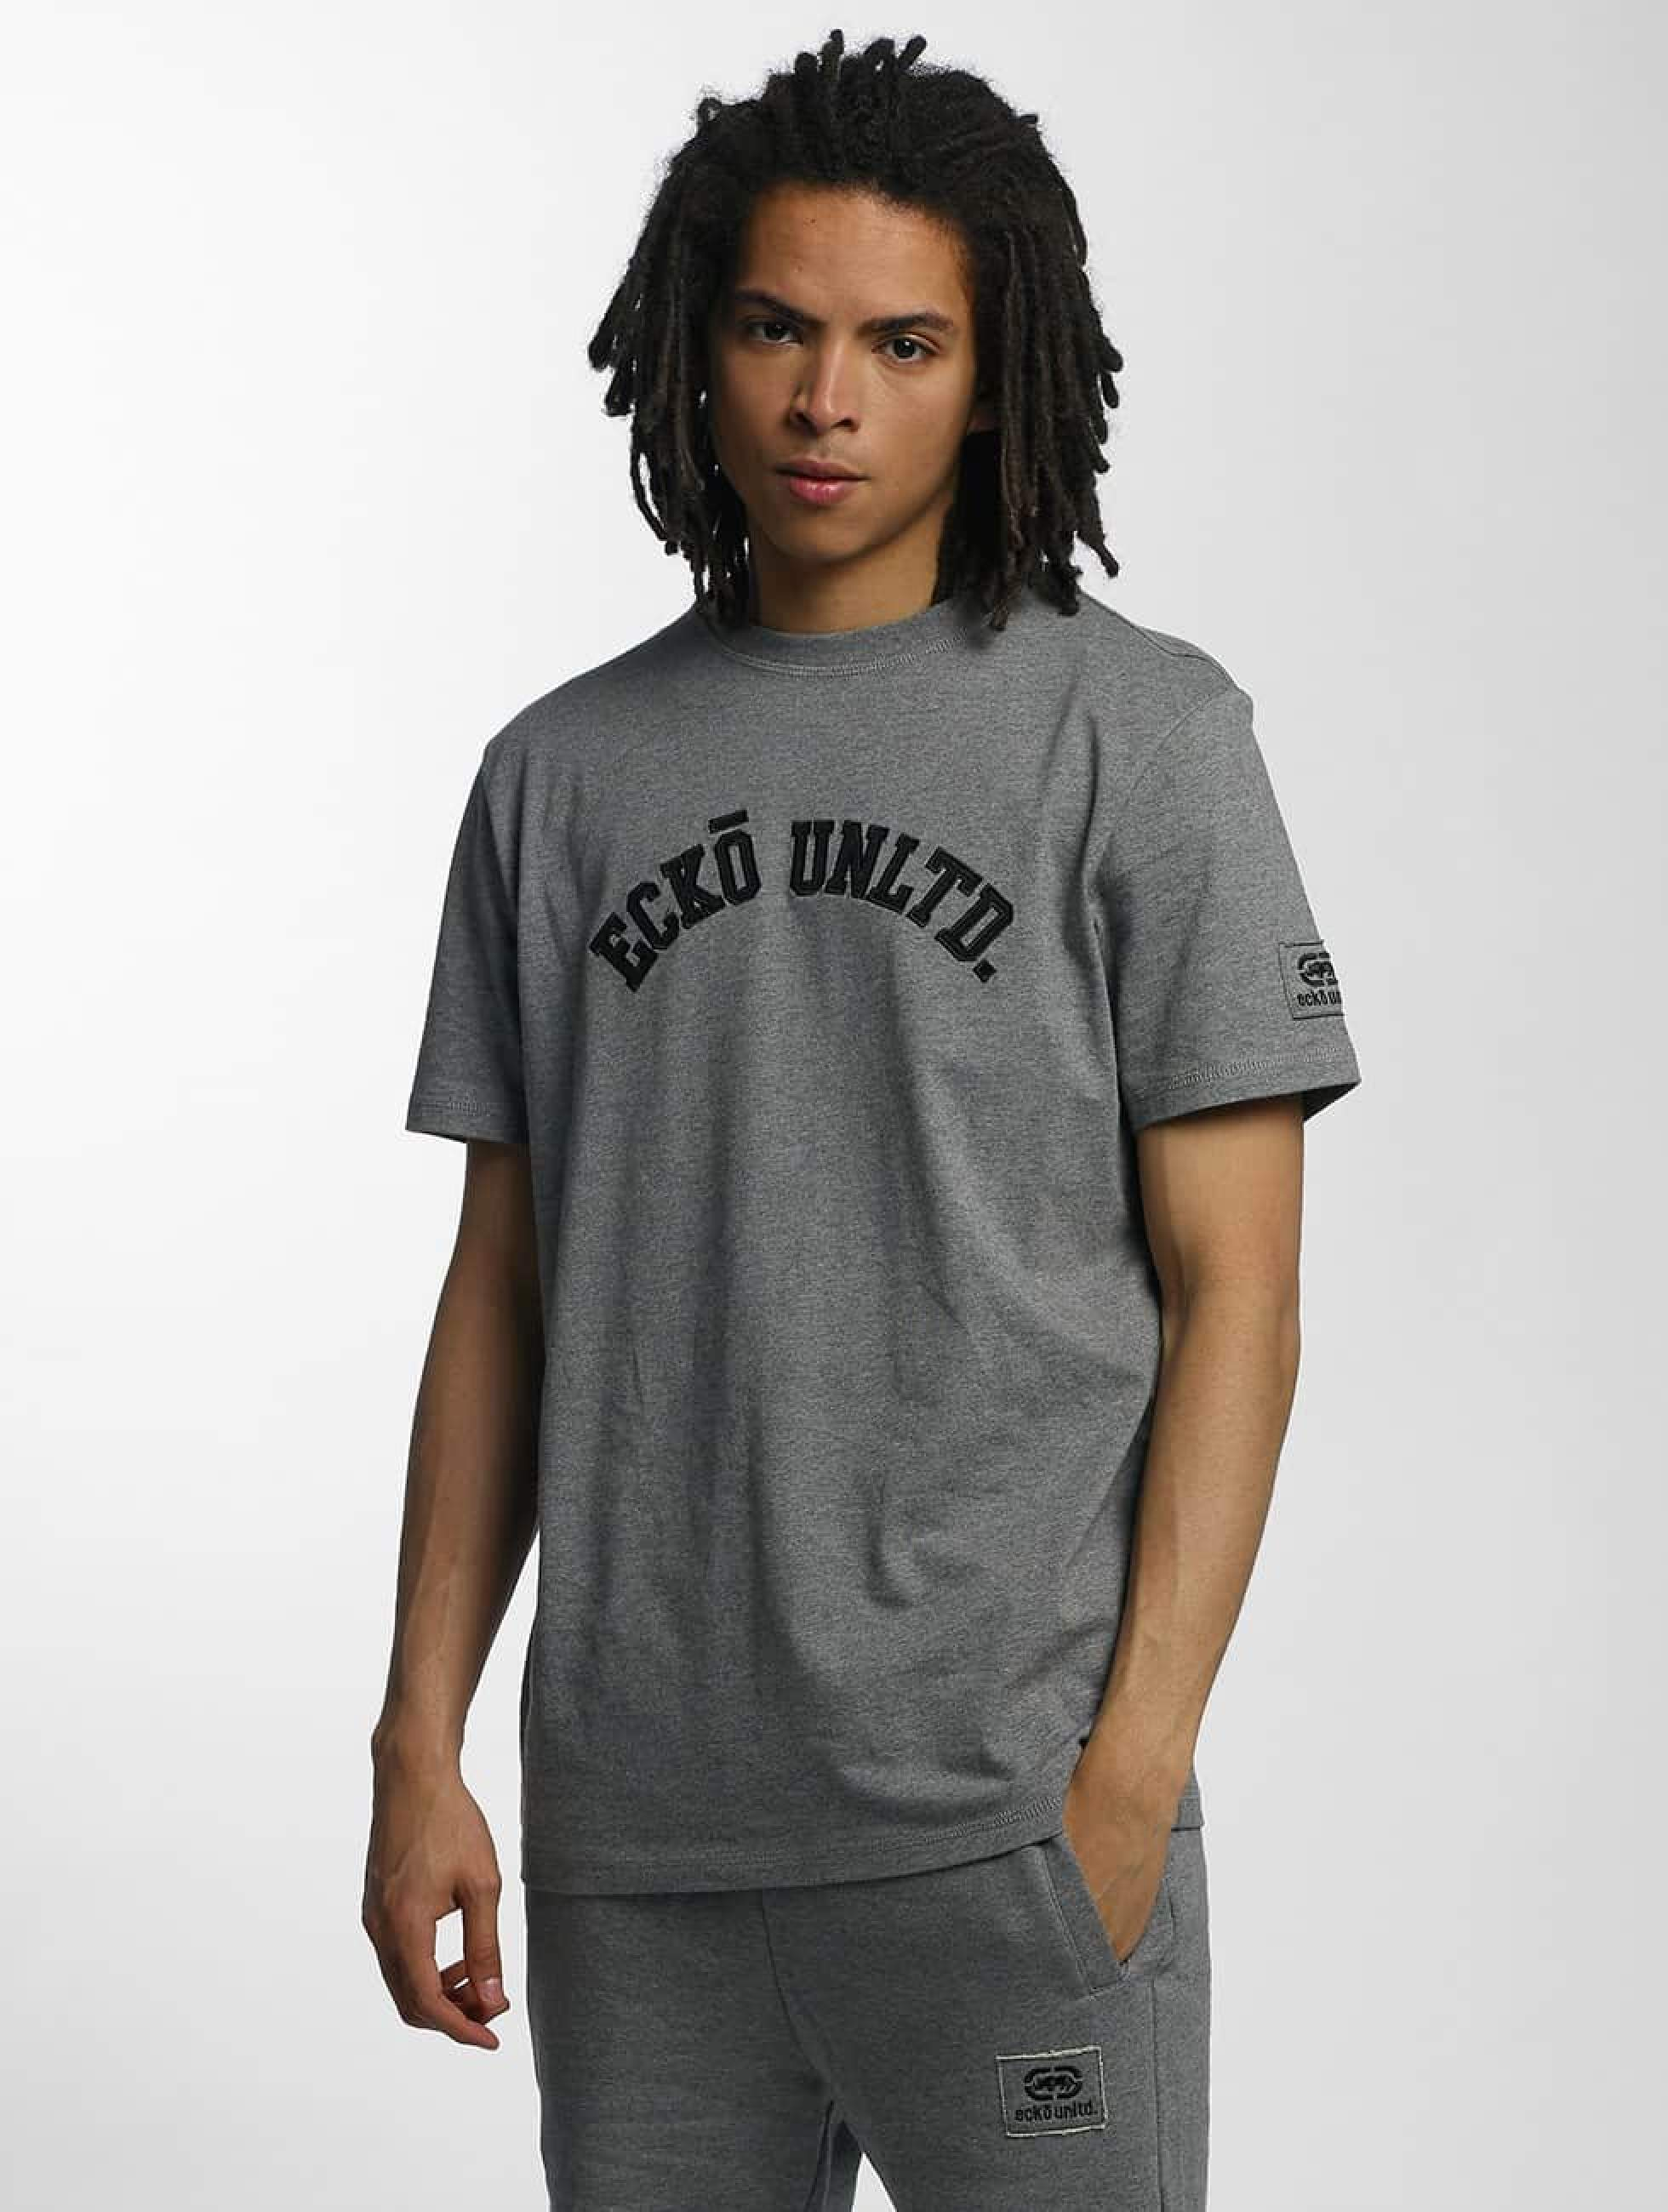 Ecko Unltd. / T-Shirt Melange in grey L